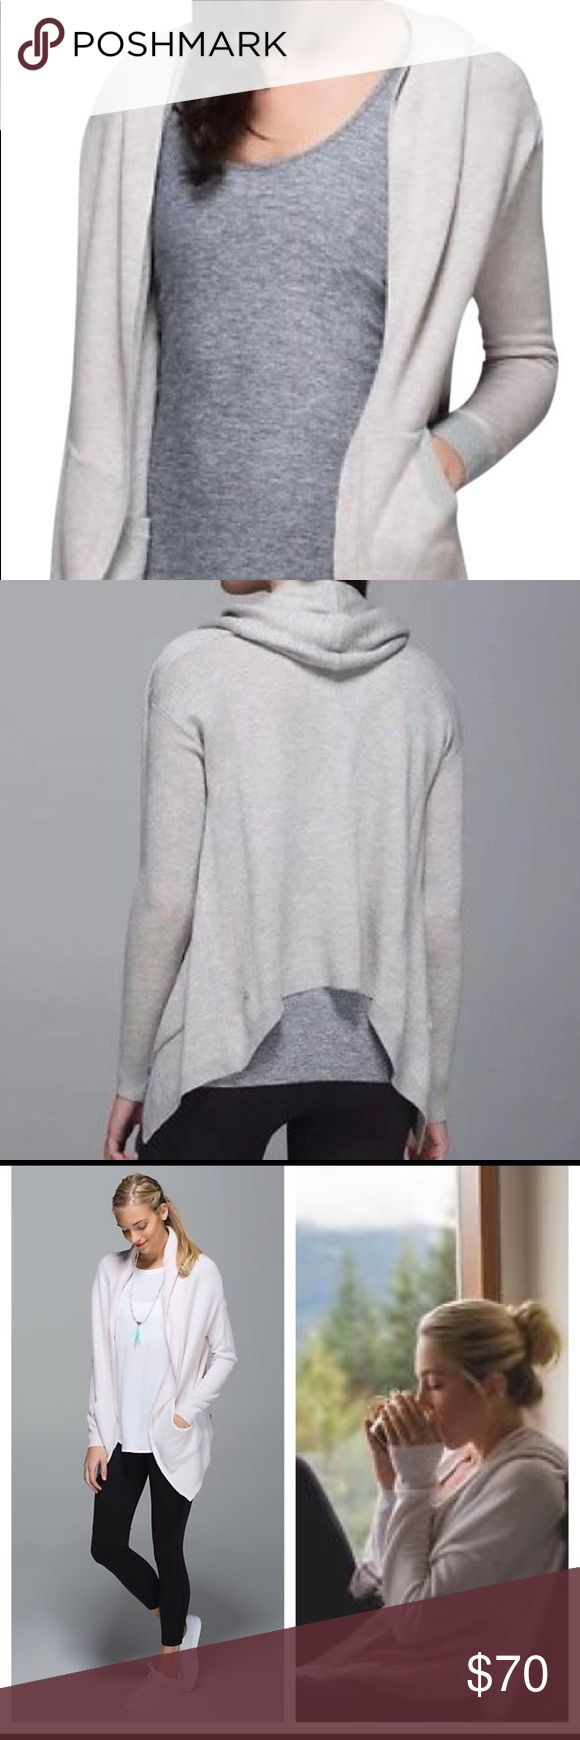 Lululemon Cabin Yogi Wrap Sweater Lululemon Cabin Yogi wrap reversible slouchy sweater/hoodie/wrap. Breathable fabric of tencel blend and is made reversible. Two front pockets on each side. Details include loose fit, thumb holes and is reversible with one side being heathered white and the other neutral nude. lululemon athletica Sweaters Cardigans